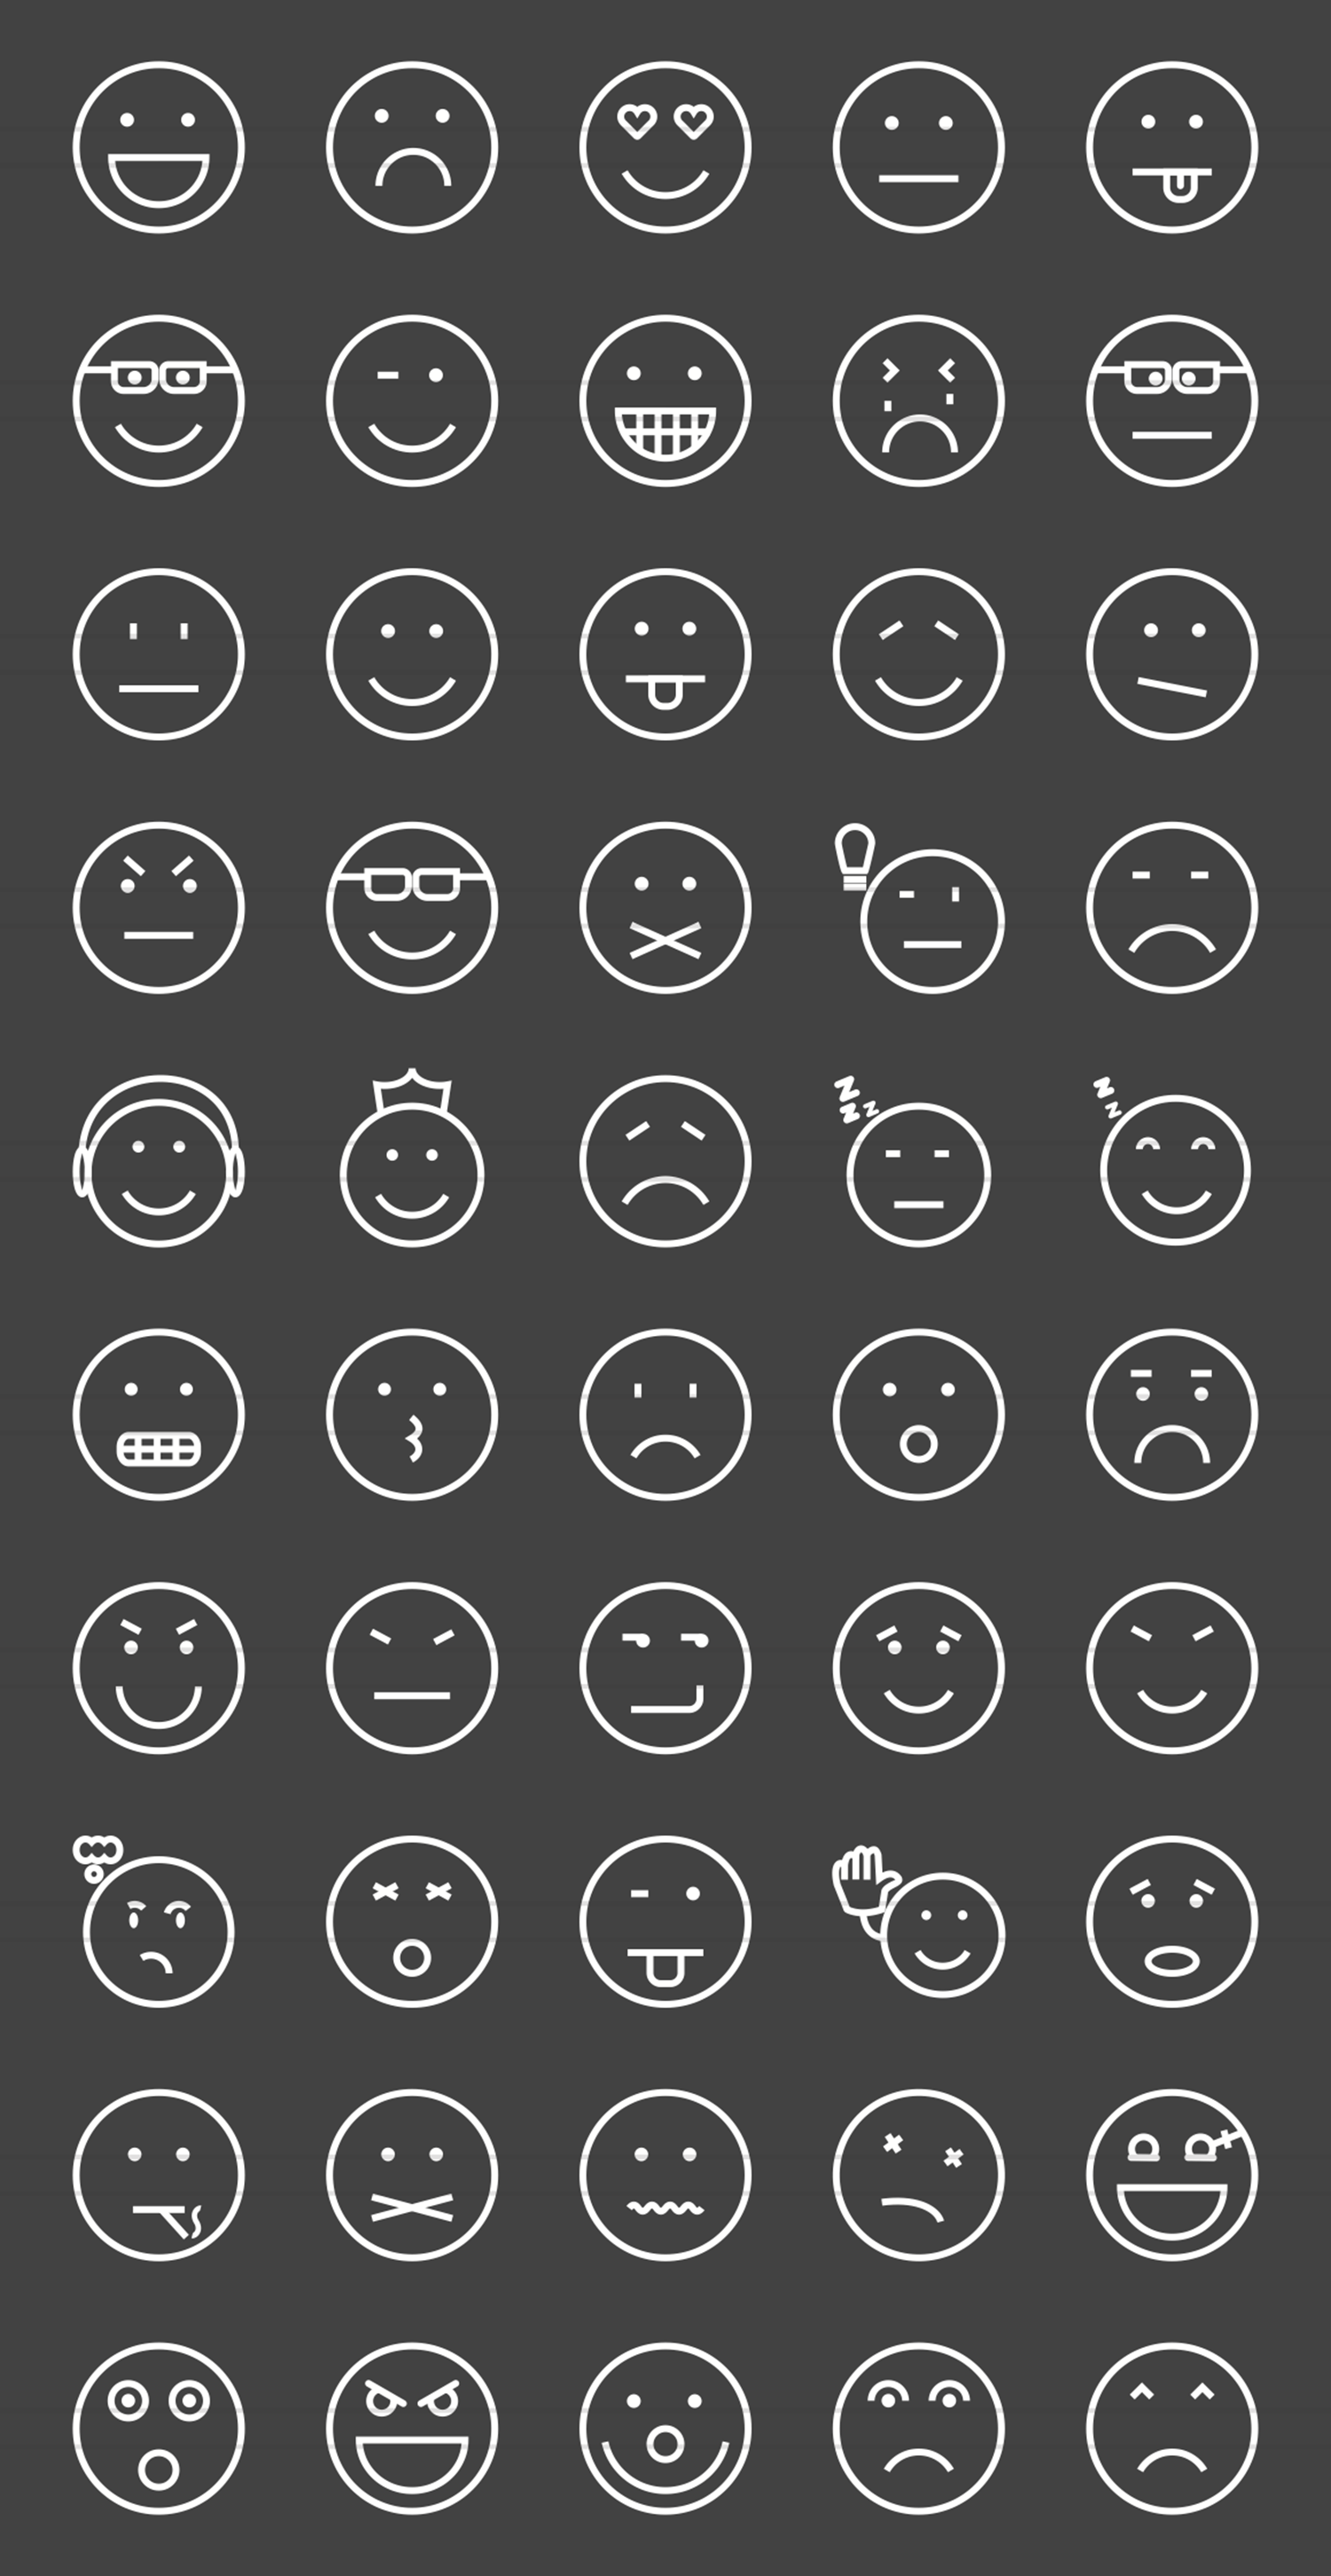 50 Emoticons Line Inverted Icons example image 2